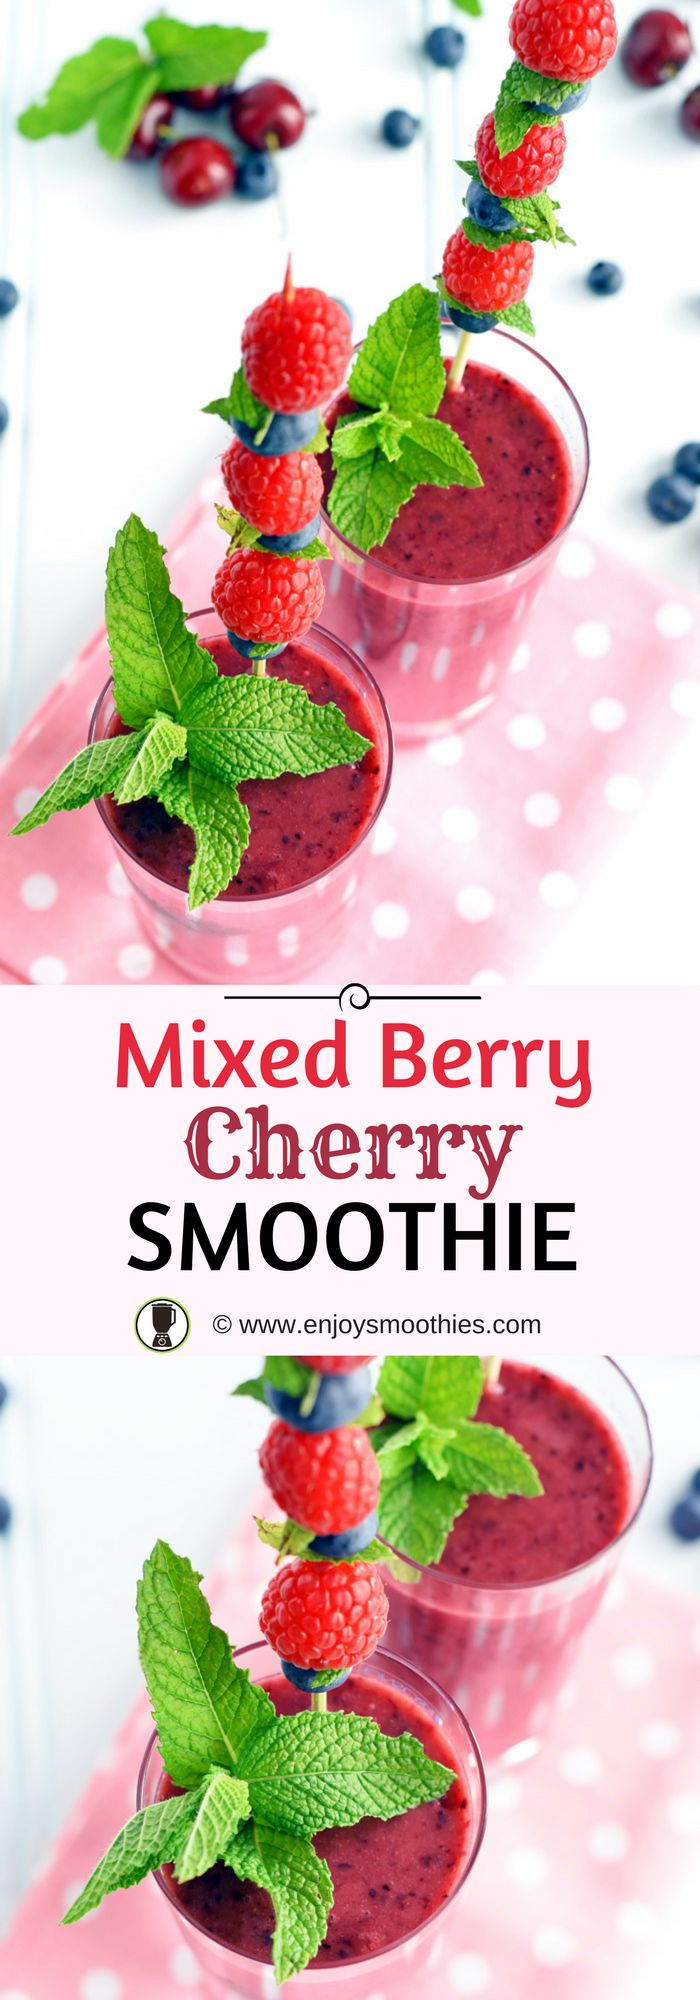 Low in calories and a rich source of powerful antioxidants, cherry smoothies are delicious combined with other berries